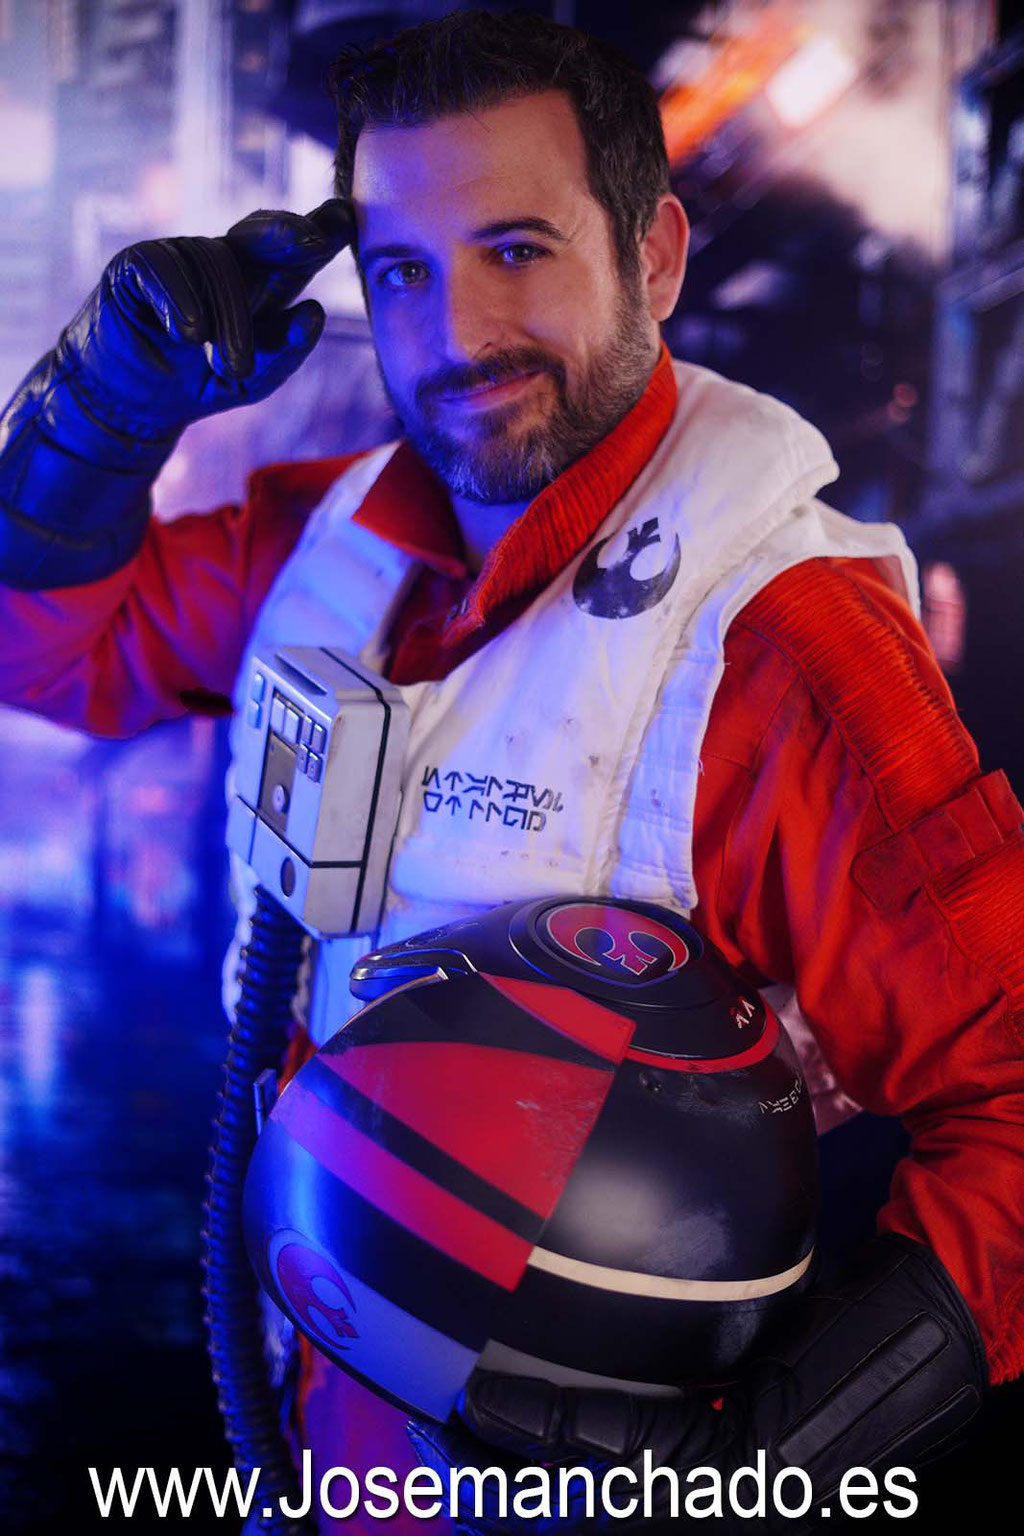 cosplay poe dameron, cosplay star wars, poe dameron, fotografo cosplay, fotografo cosplayer, fotografo actores, fotos actores, book fotos actores